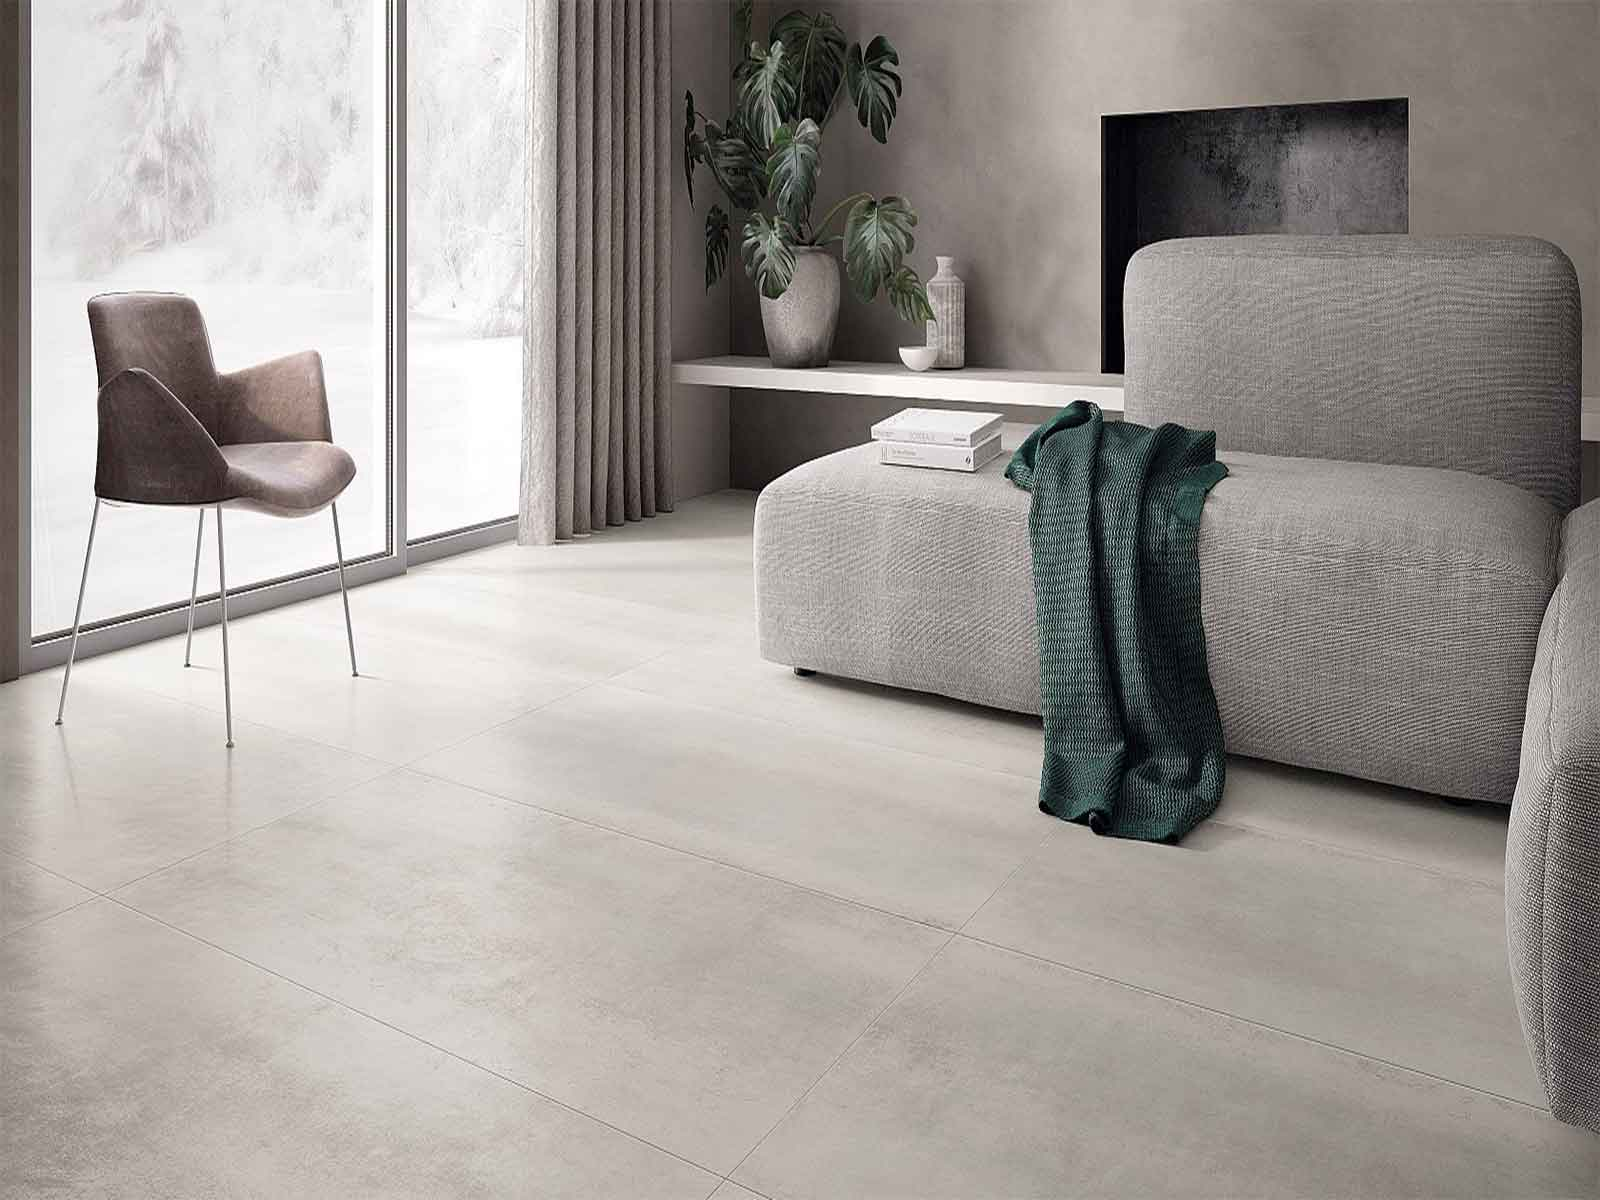 SUPERGRES MET ALL STOCK CERAMICHE SANTIN MILANO